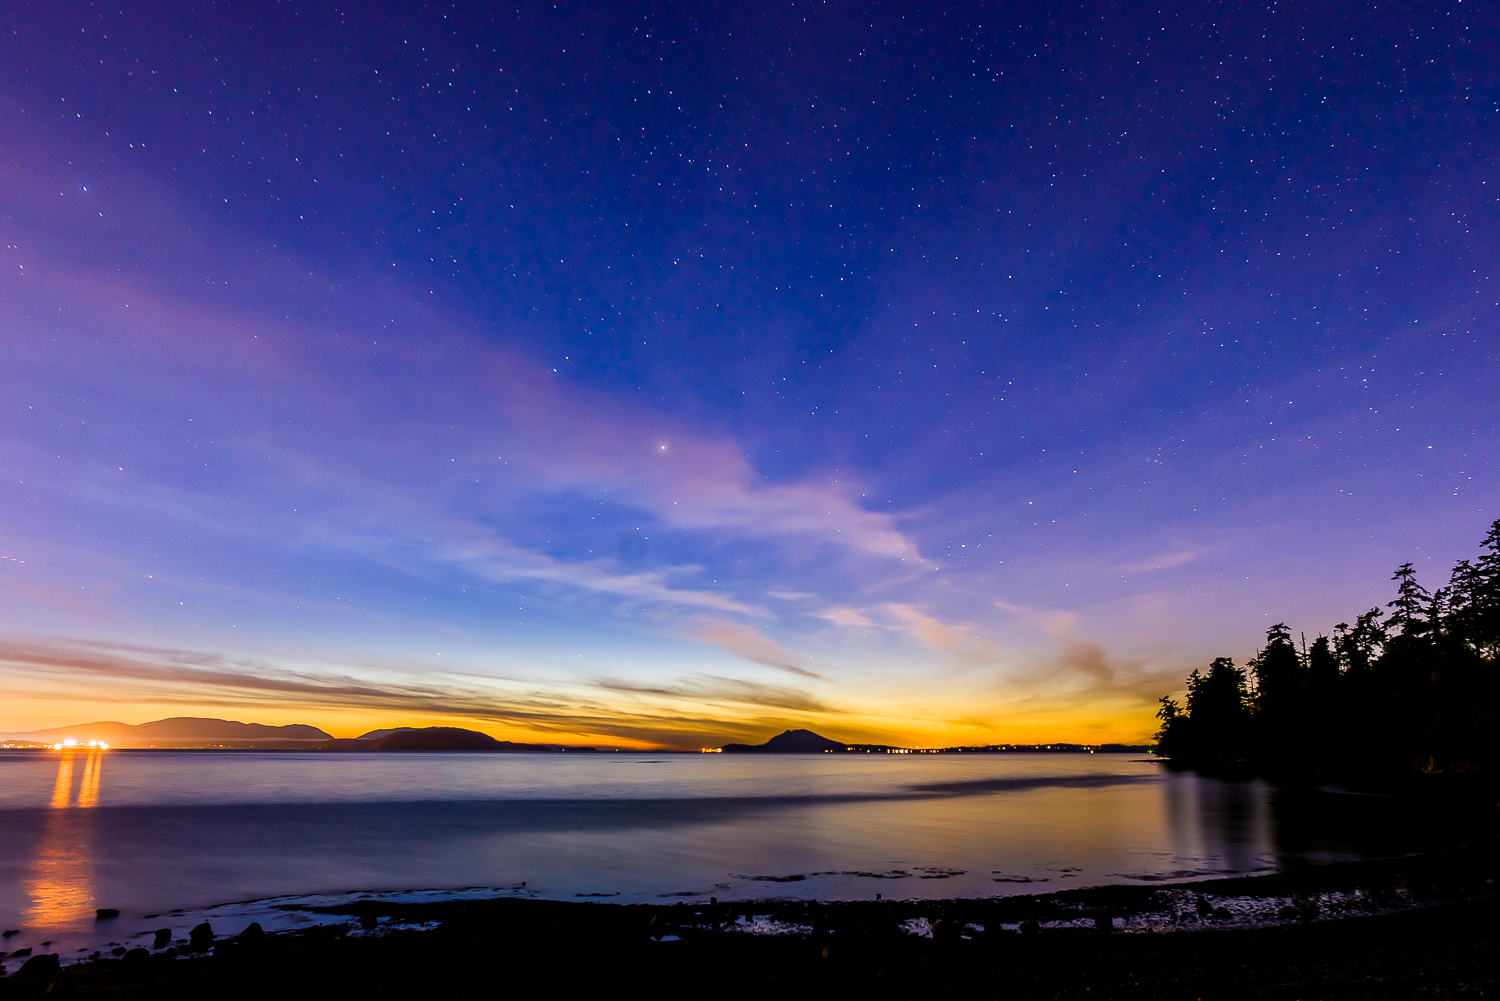 Bayview State Park Light Polution   Photo by Kevin Ehlers - Nikon d810 + 20mm f/1.8, 20 seconds, f22, ISO 200